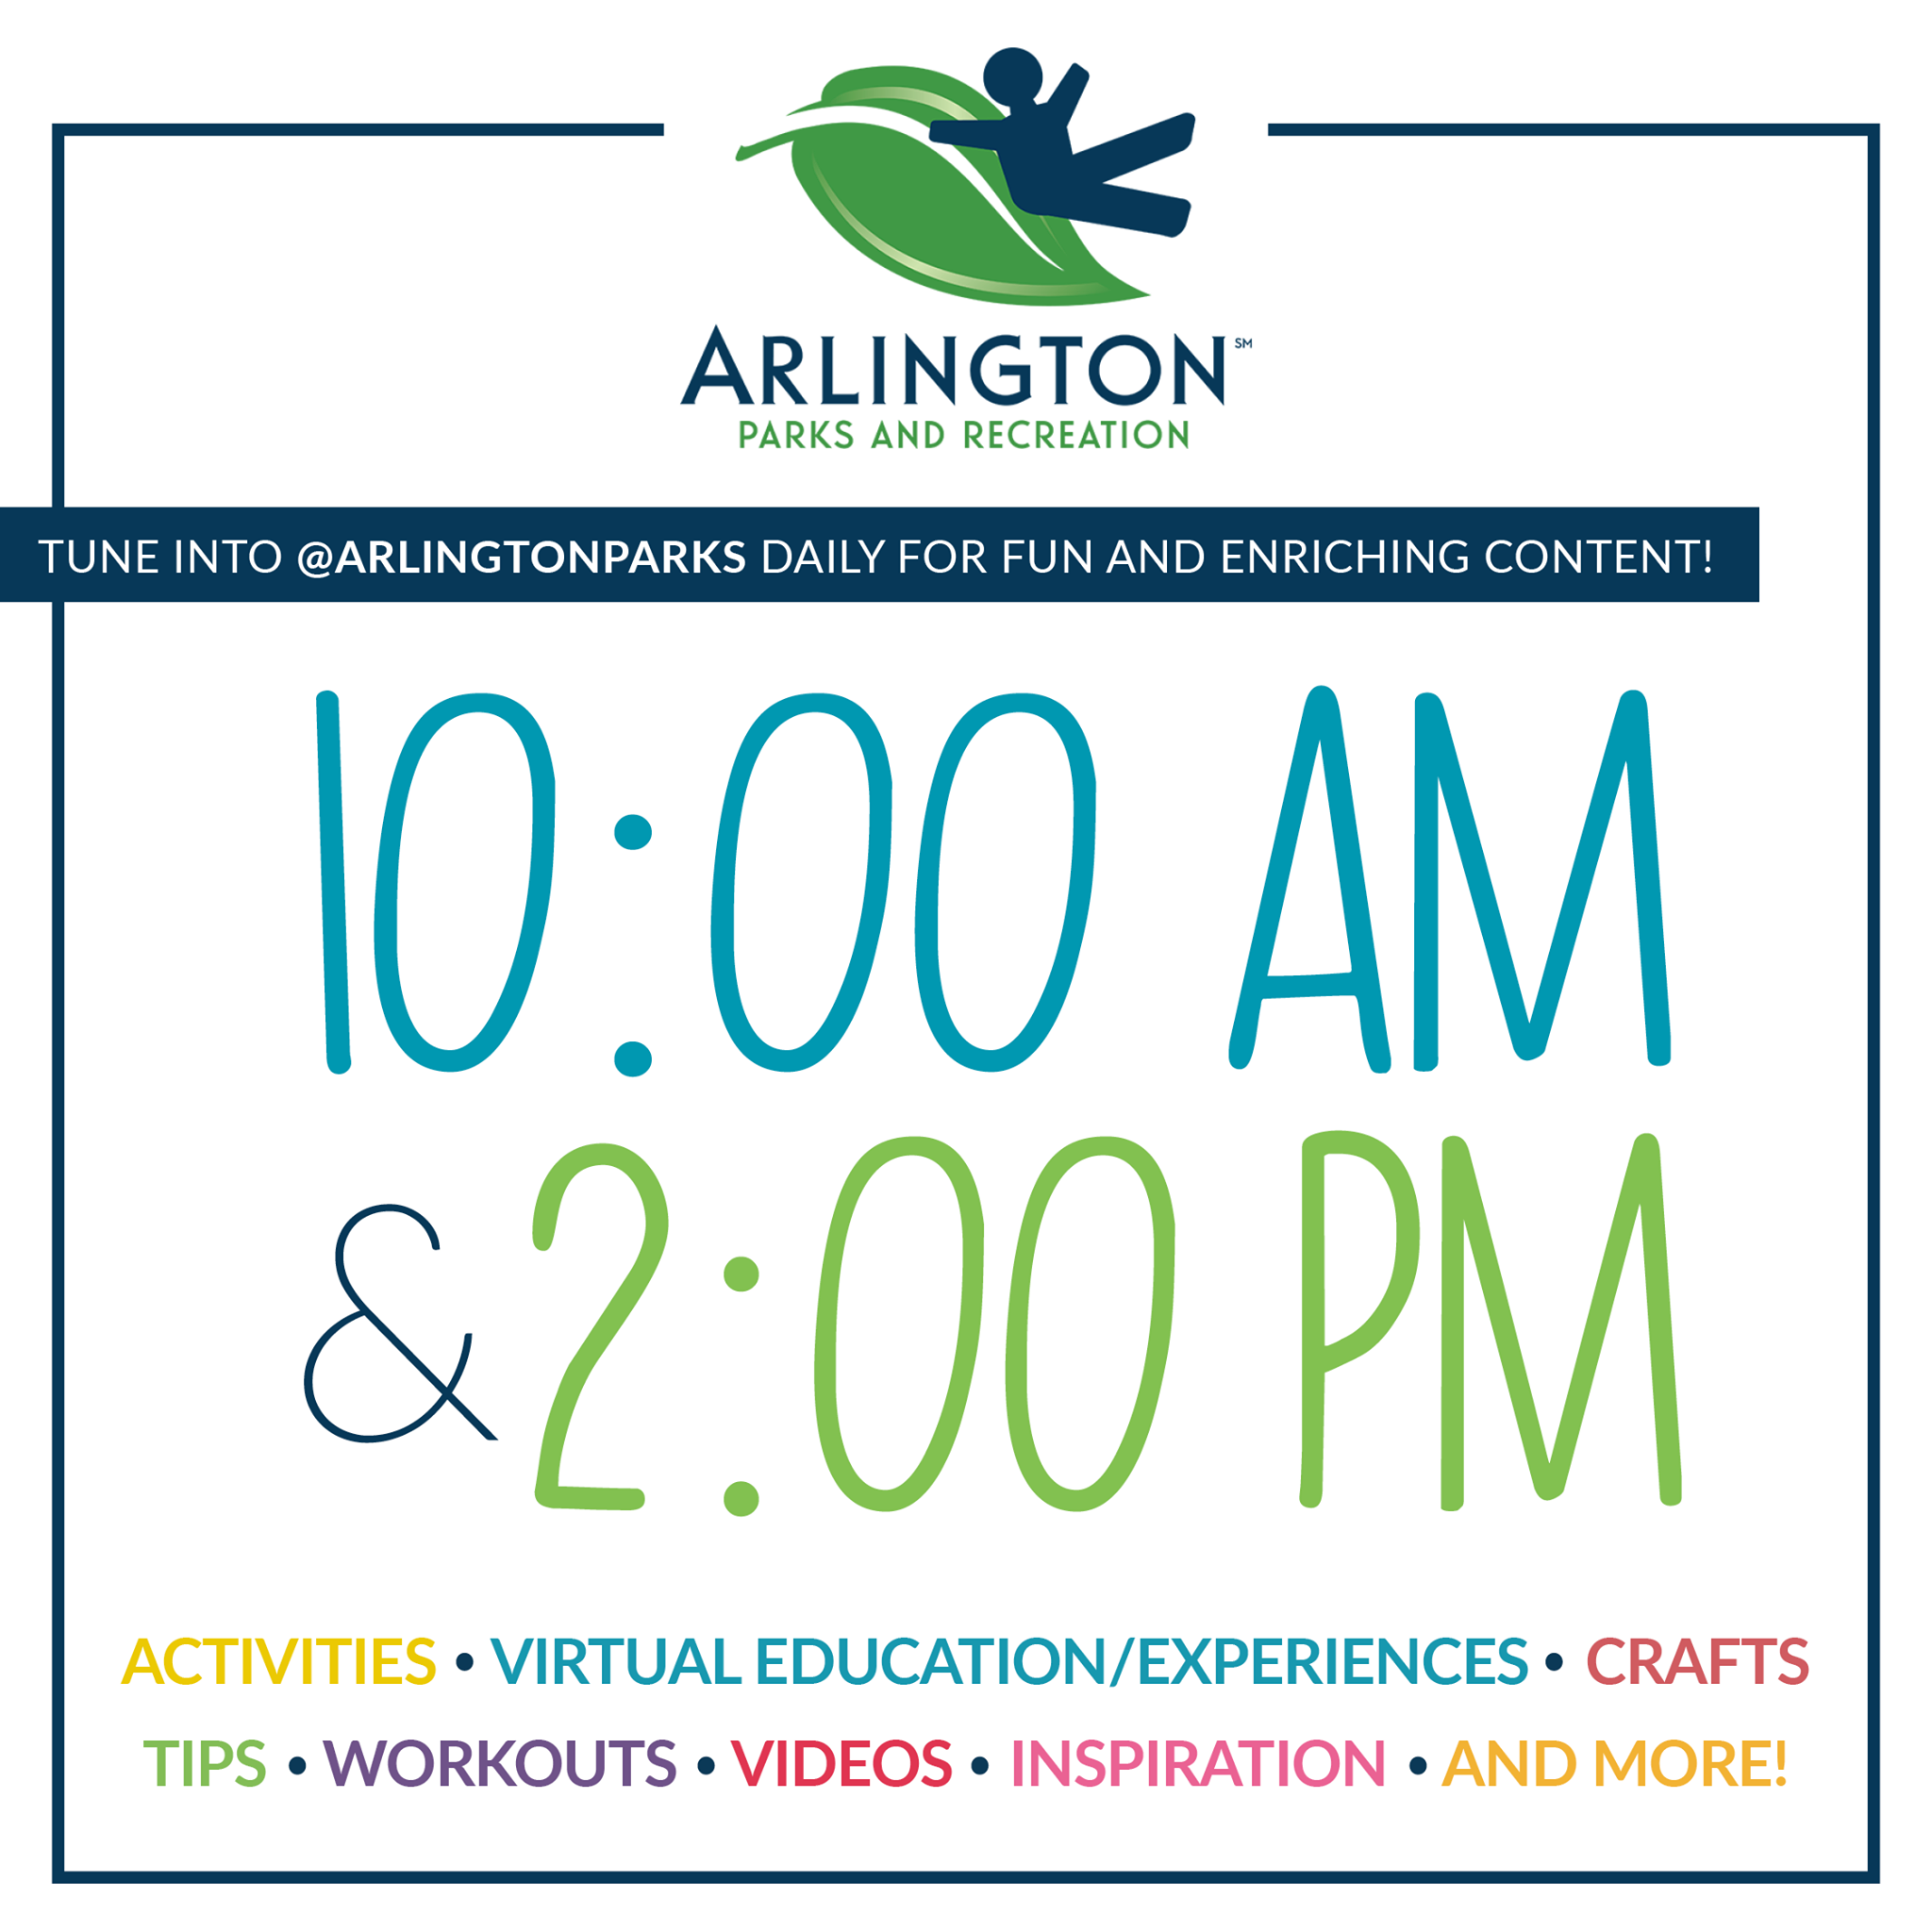 Arlington Parks & Recreation